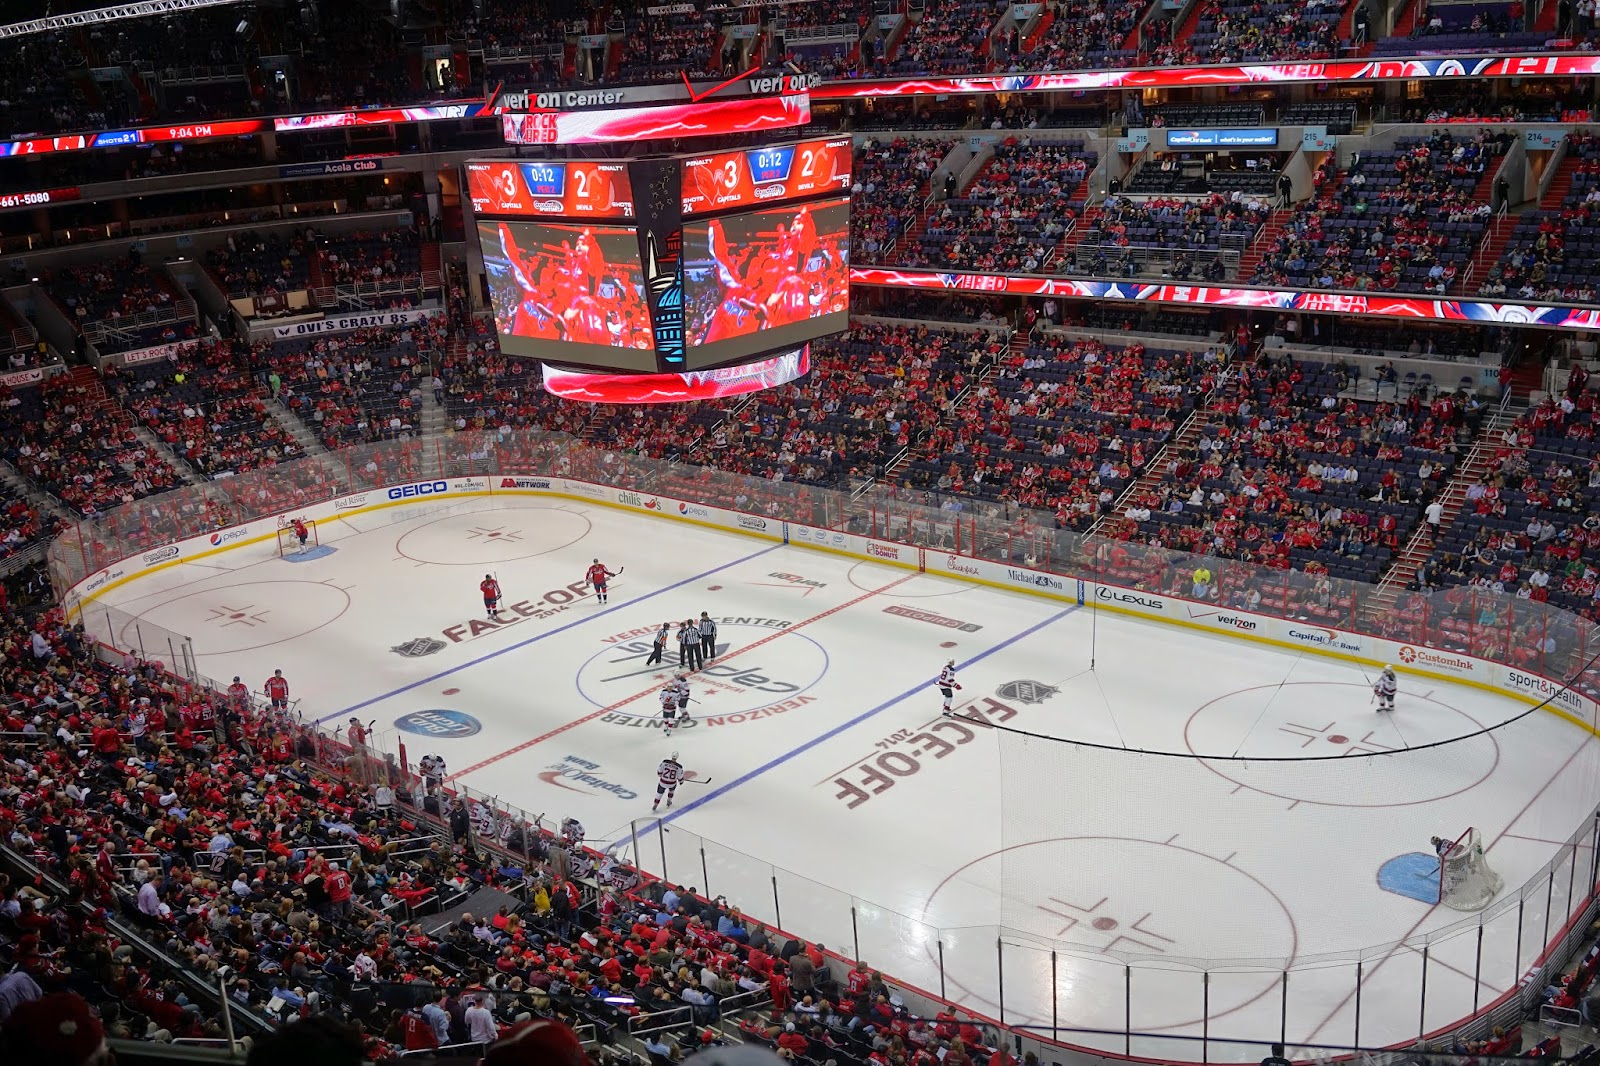 washington d.c capitals hockey